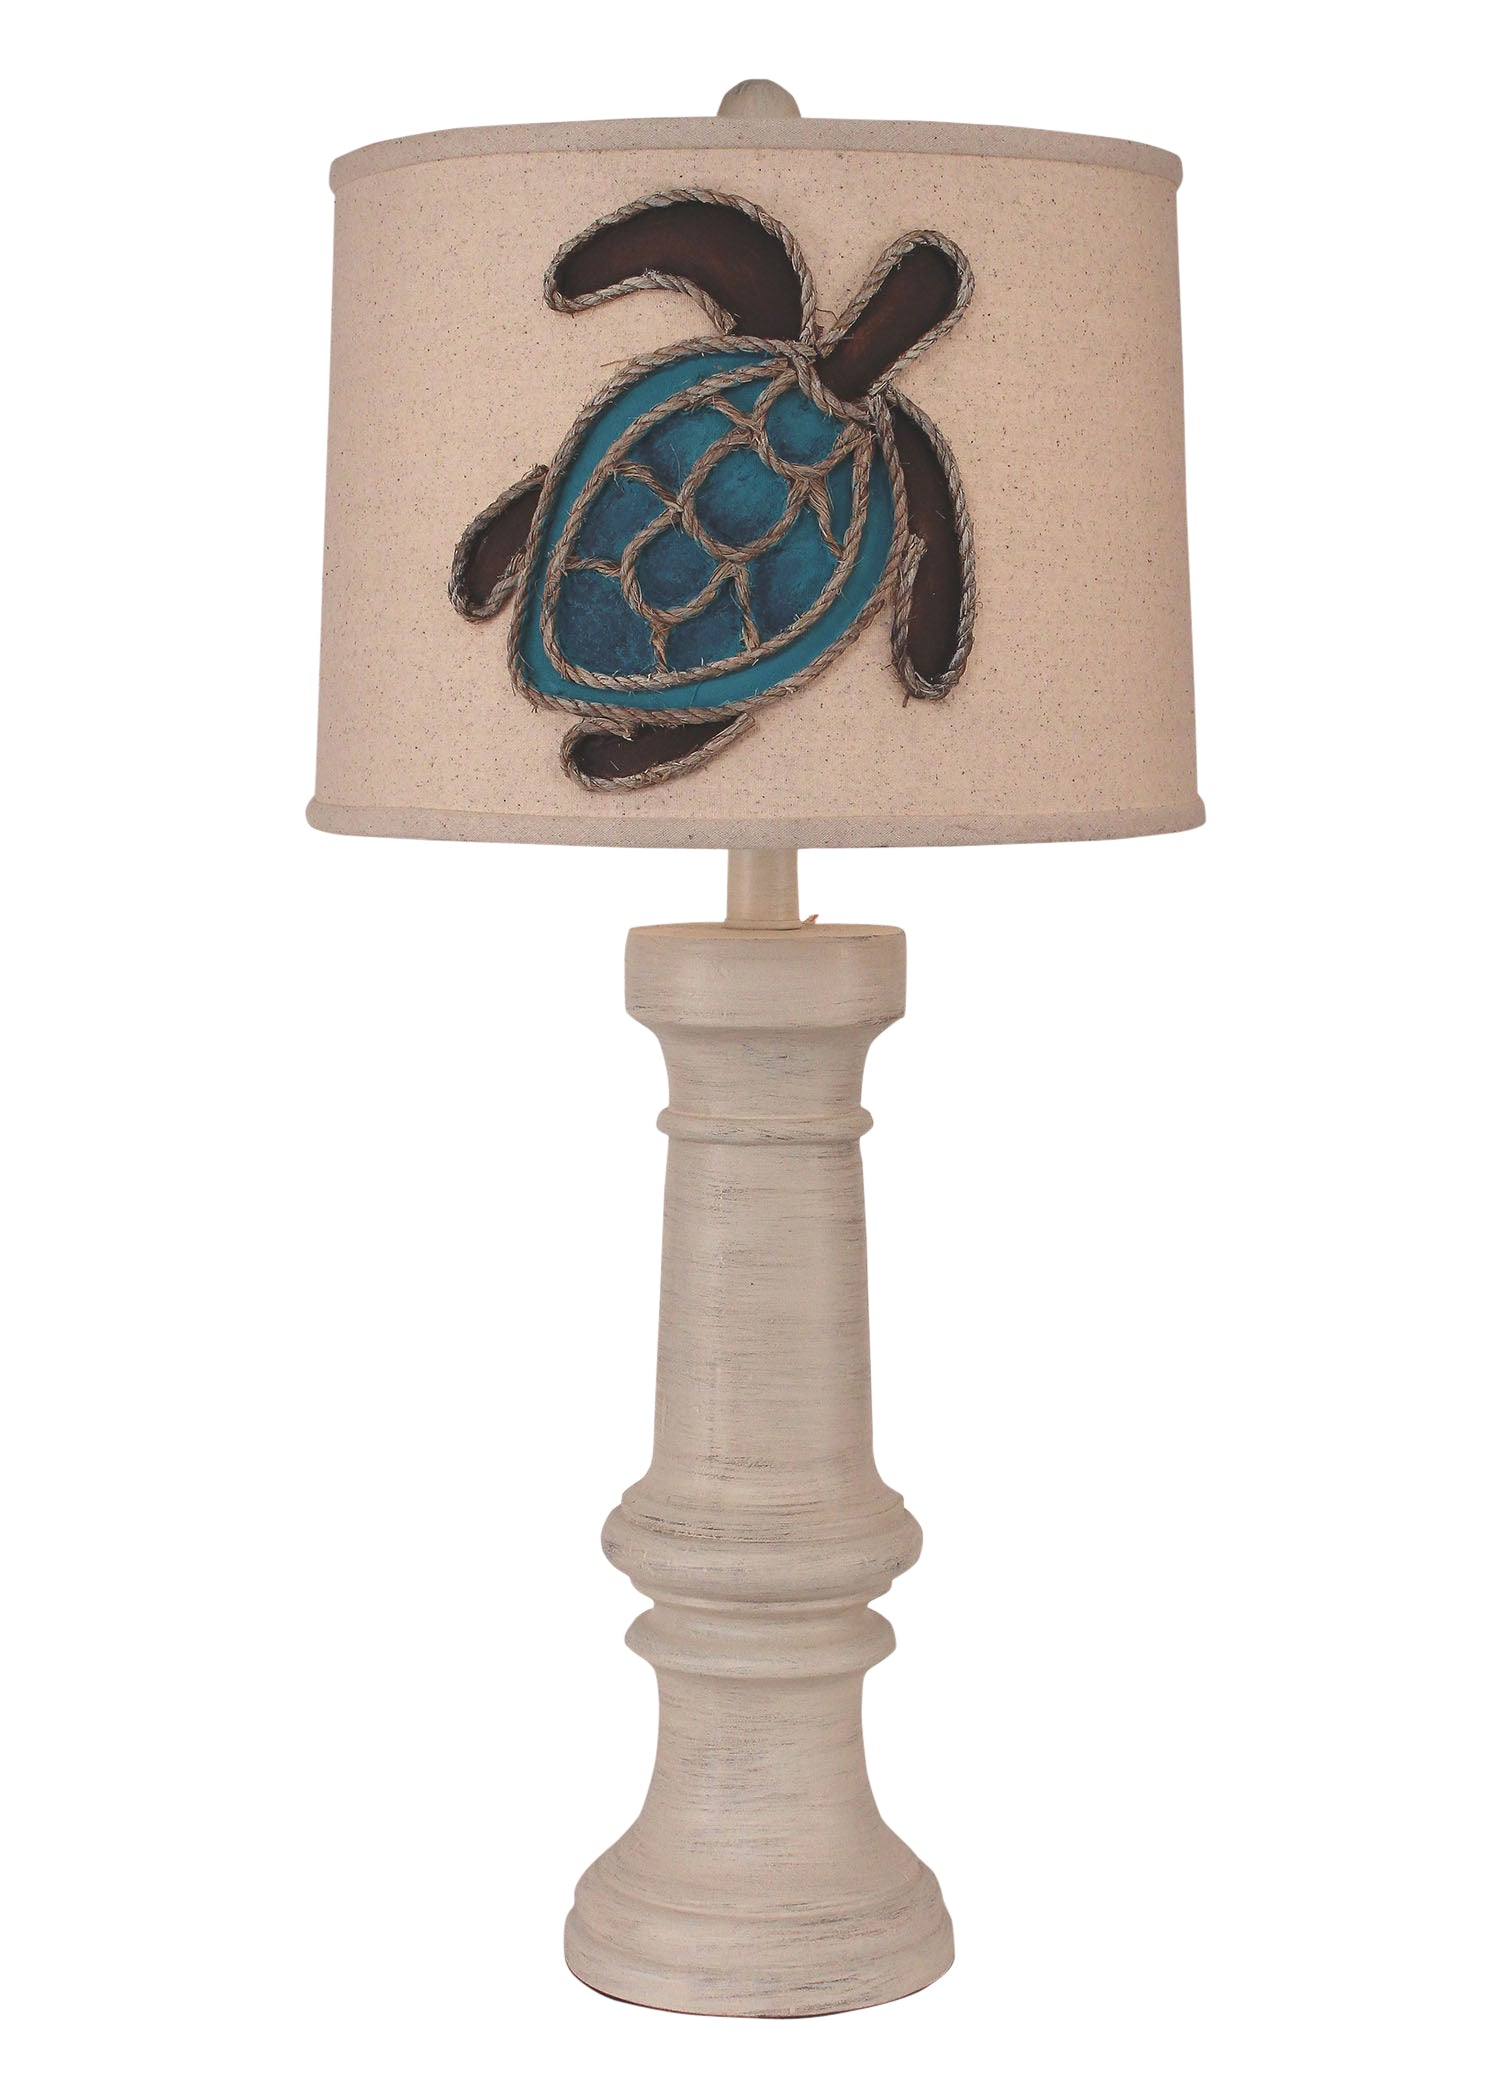 Chunky Casual Table Lamp w/ Turtle Shade - Coast Lamp Shop